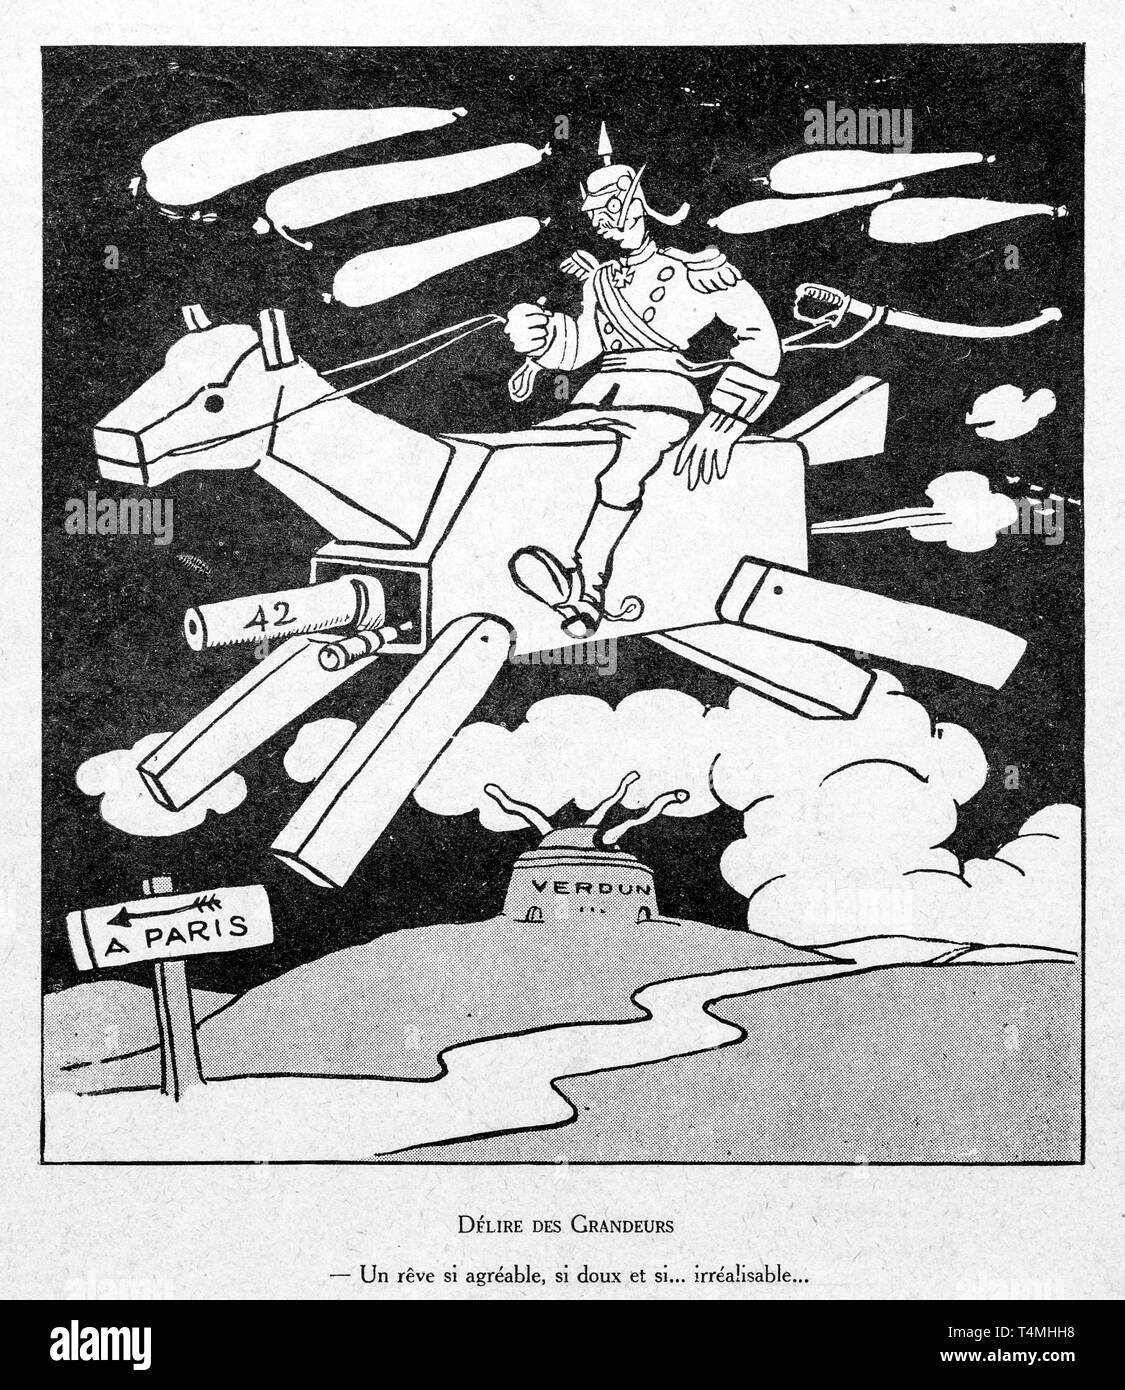 Délire des Grandeurs, WW1 caricature by illustrator Picarol showing the German Kaiser Wilhelm II riding mechanical war horse from Verdun to Paris - Stock Image